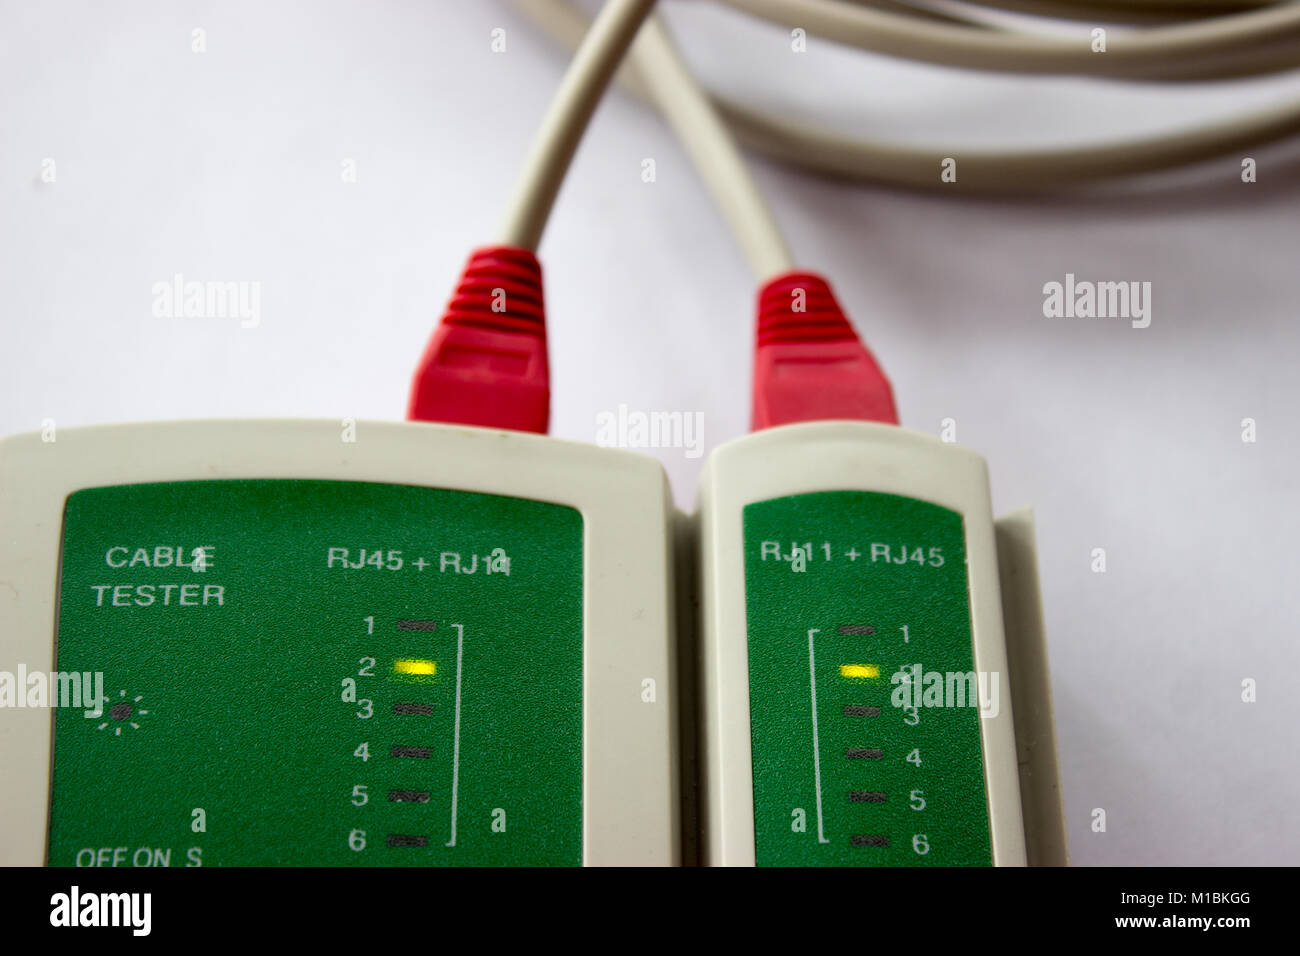 Network Cabling Stock Photos Images Alamy Rf Cable Tester Lan On The White Background Networking Tool Image